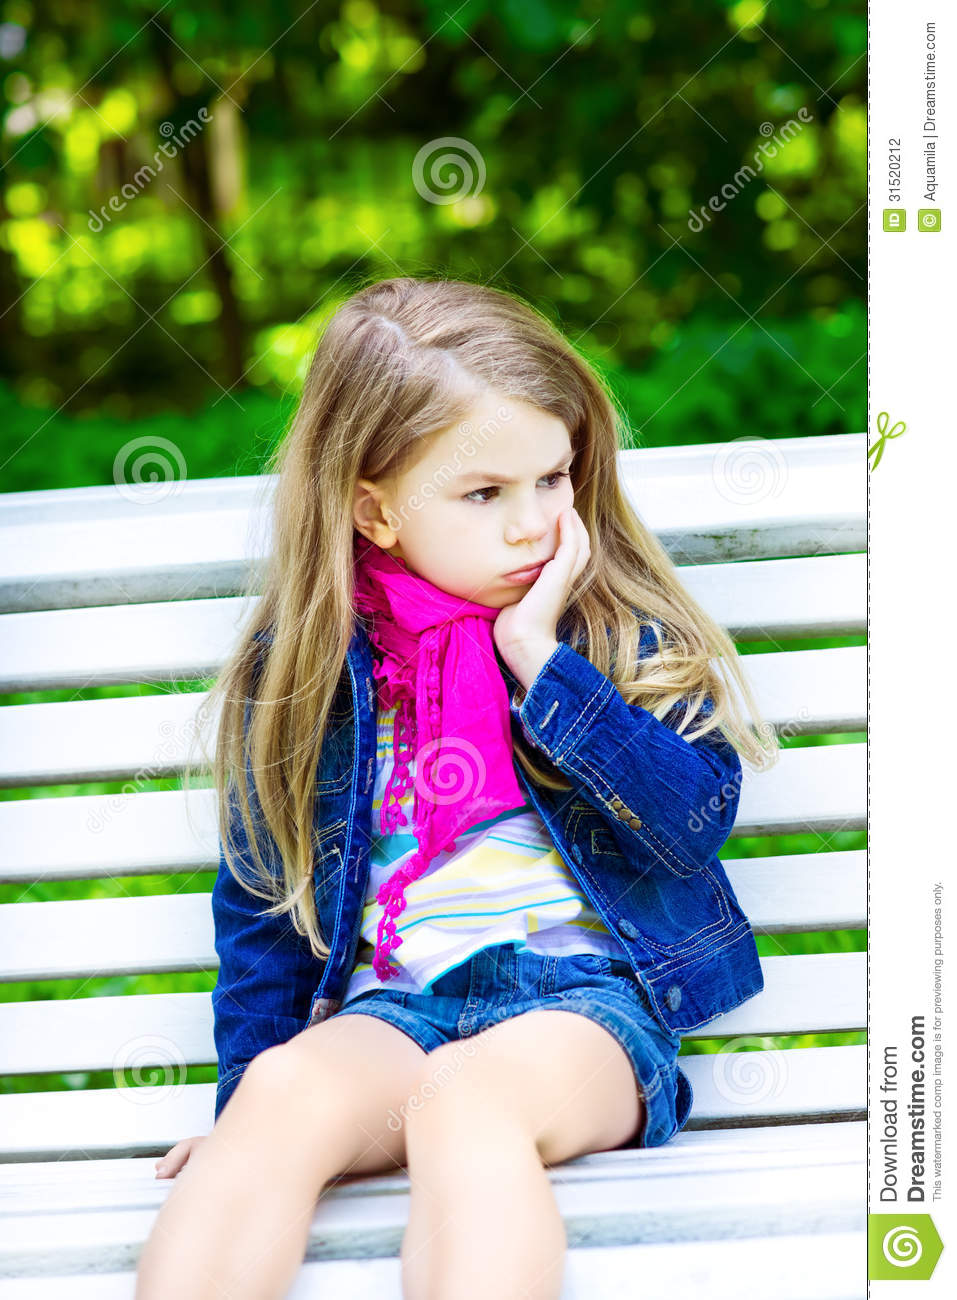 Sad Girl Sitting Alone Outside Stock Photos Sad Girl: Sad Blond Little Girl Sitting On A Bench In The Park Stock